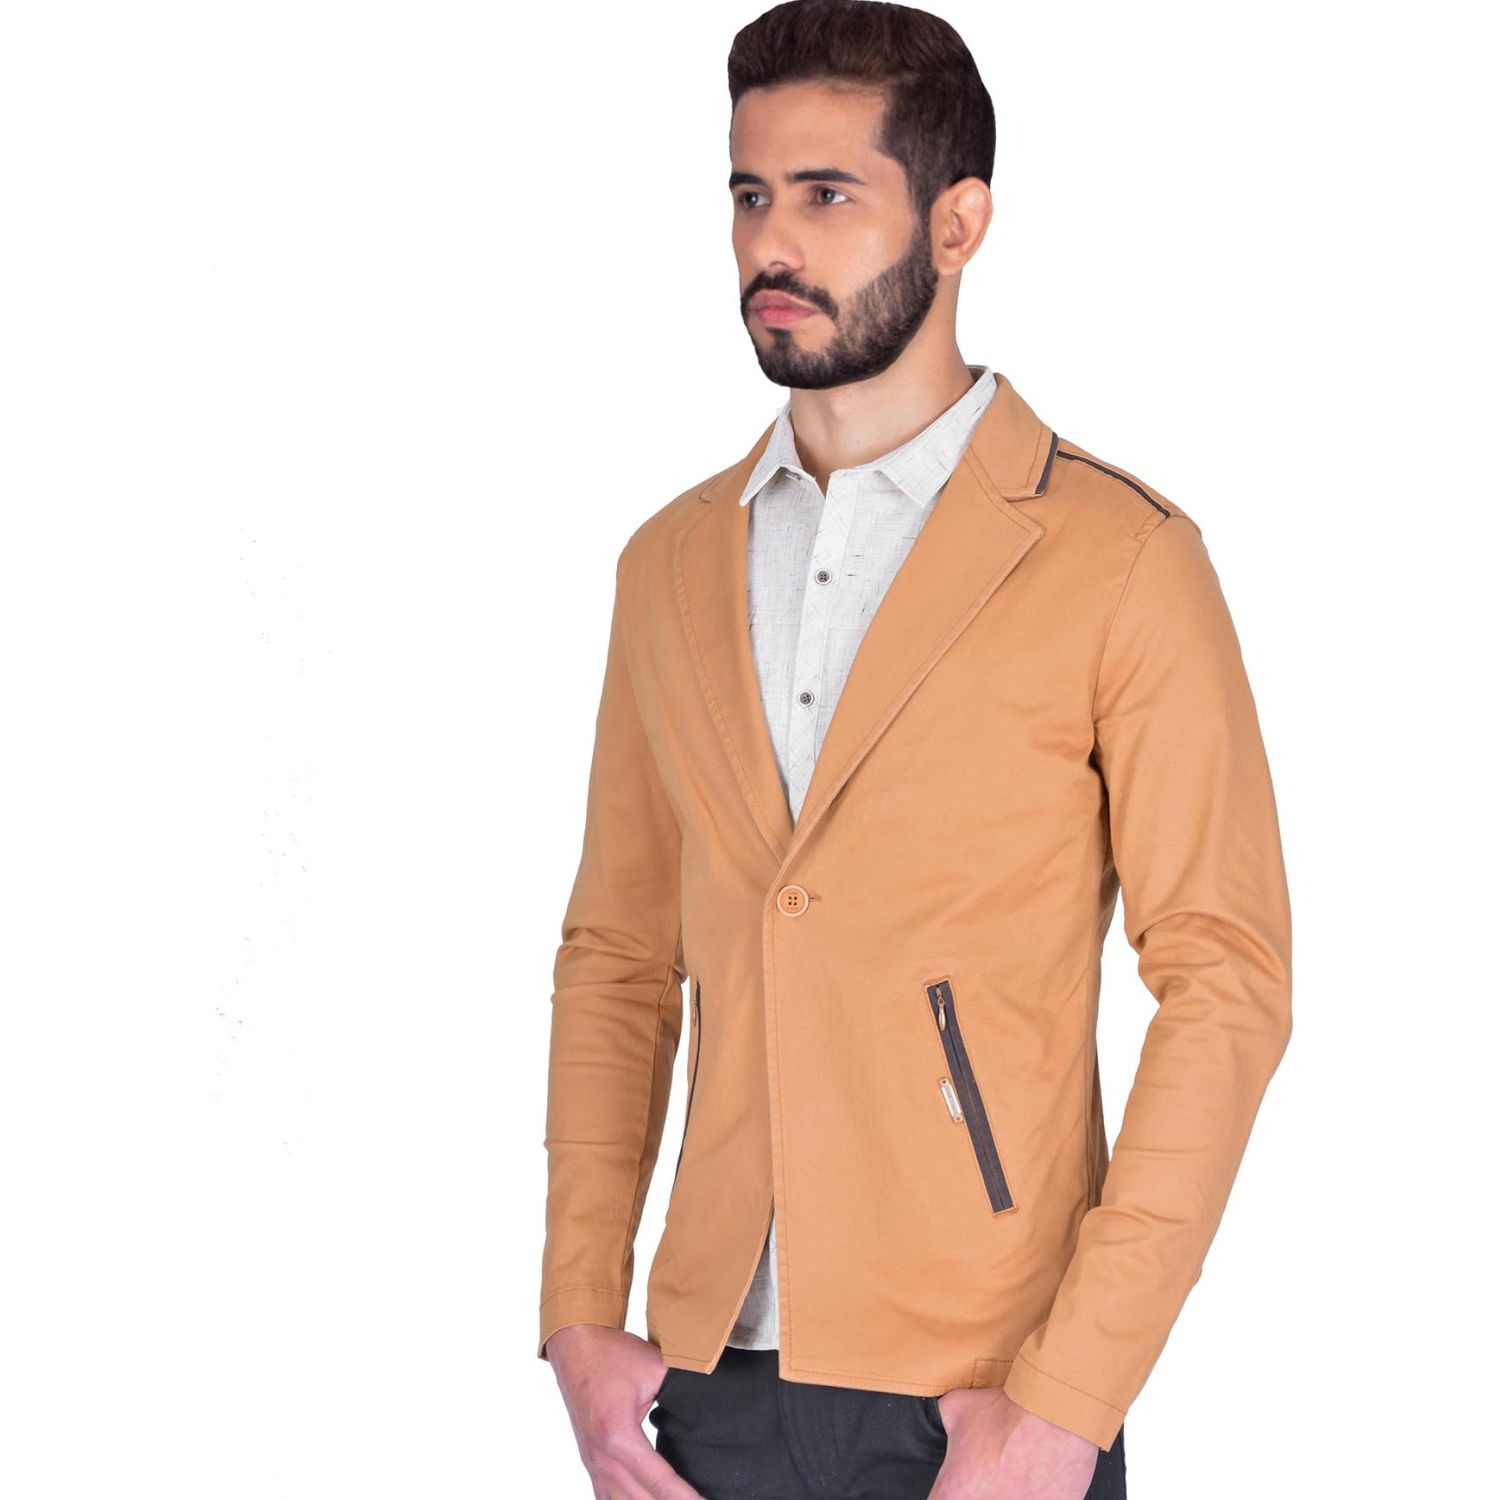 The Cult Blazer Drill, Slim Fit Camel Abrigos deportivos y blazers